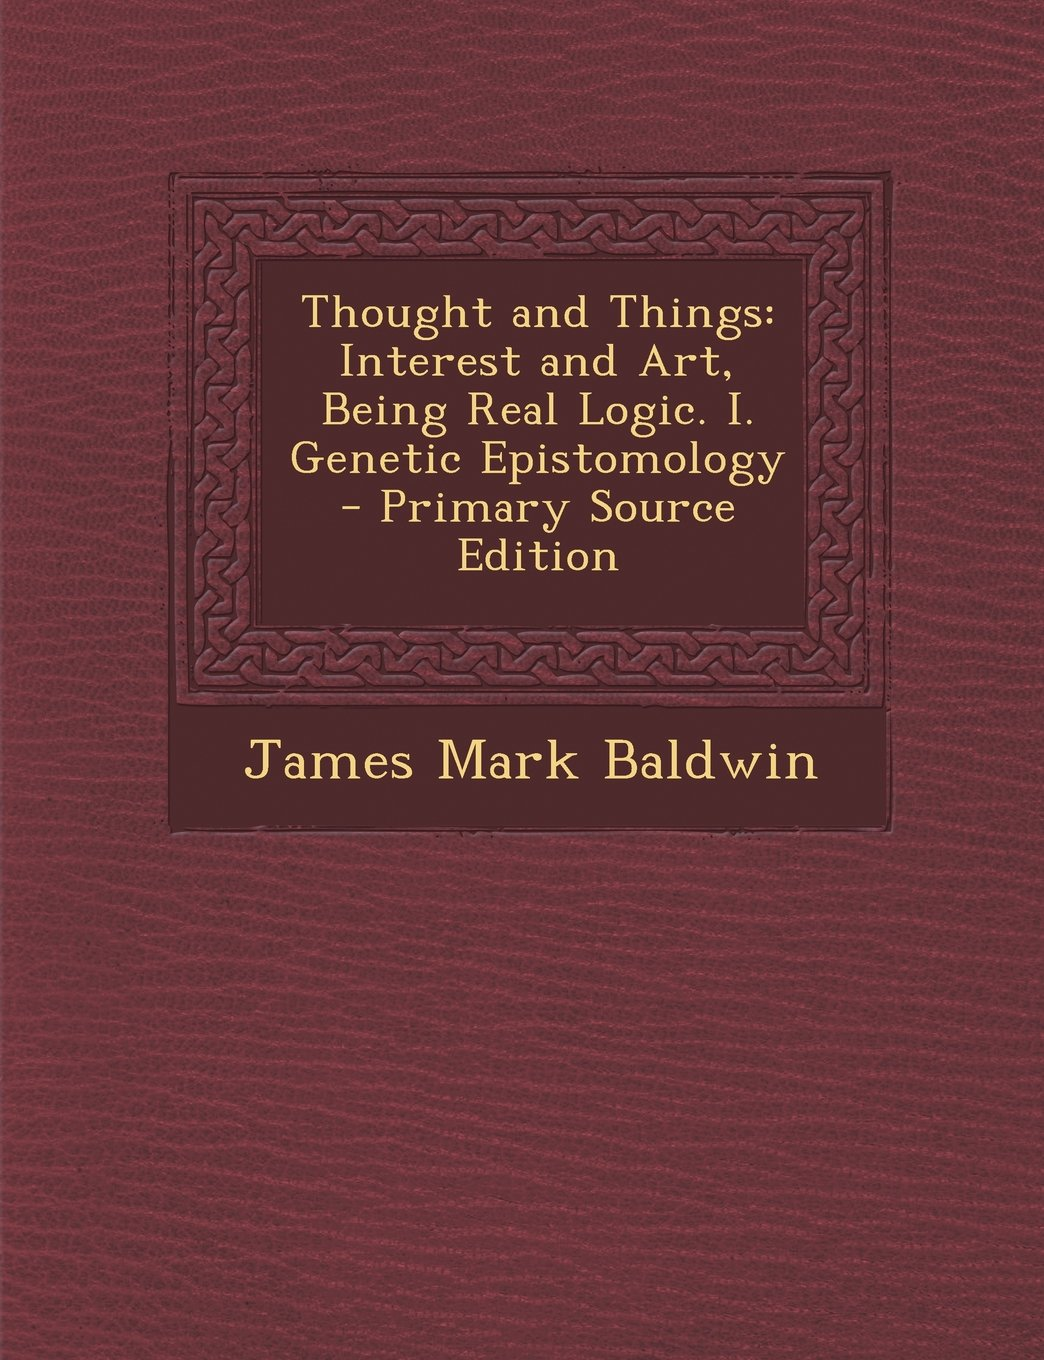 Download Thought and Things: Interest and Art, Being Real Logic. I. Genetic Epistomology - Primary Source Edition PDF